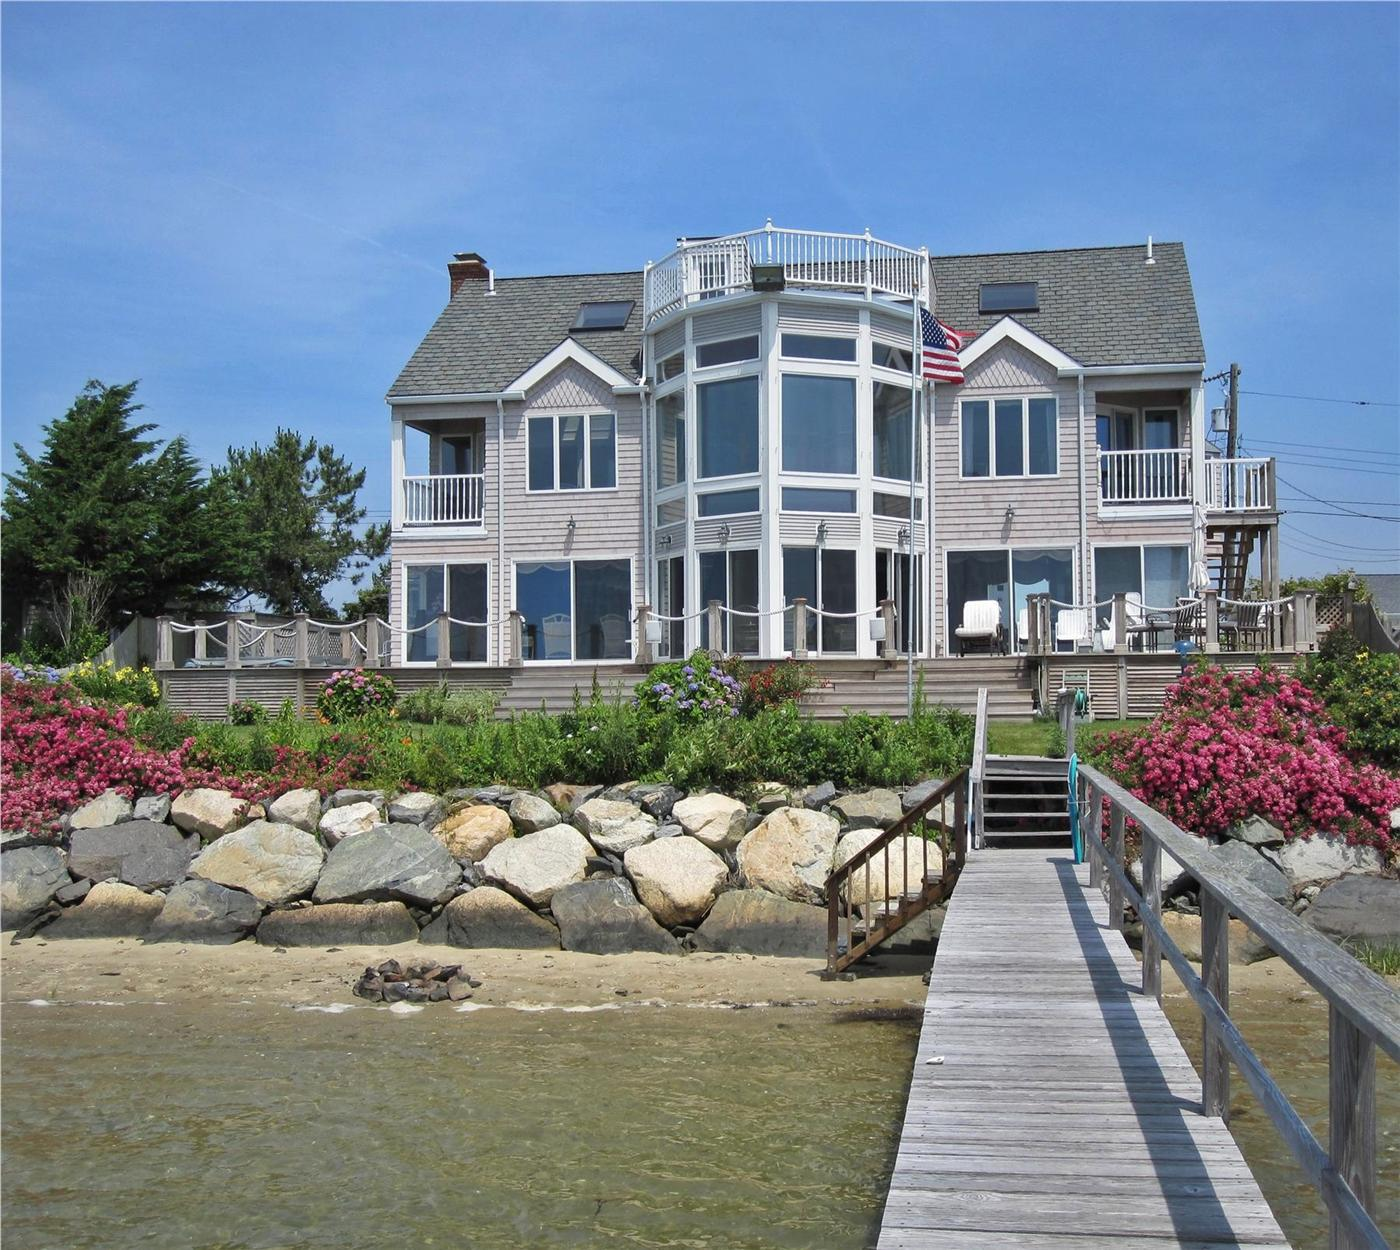 Dennis Vacation Rental Home In Cape Cod MA 02670, Salt